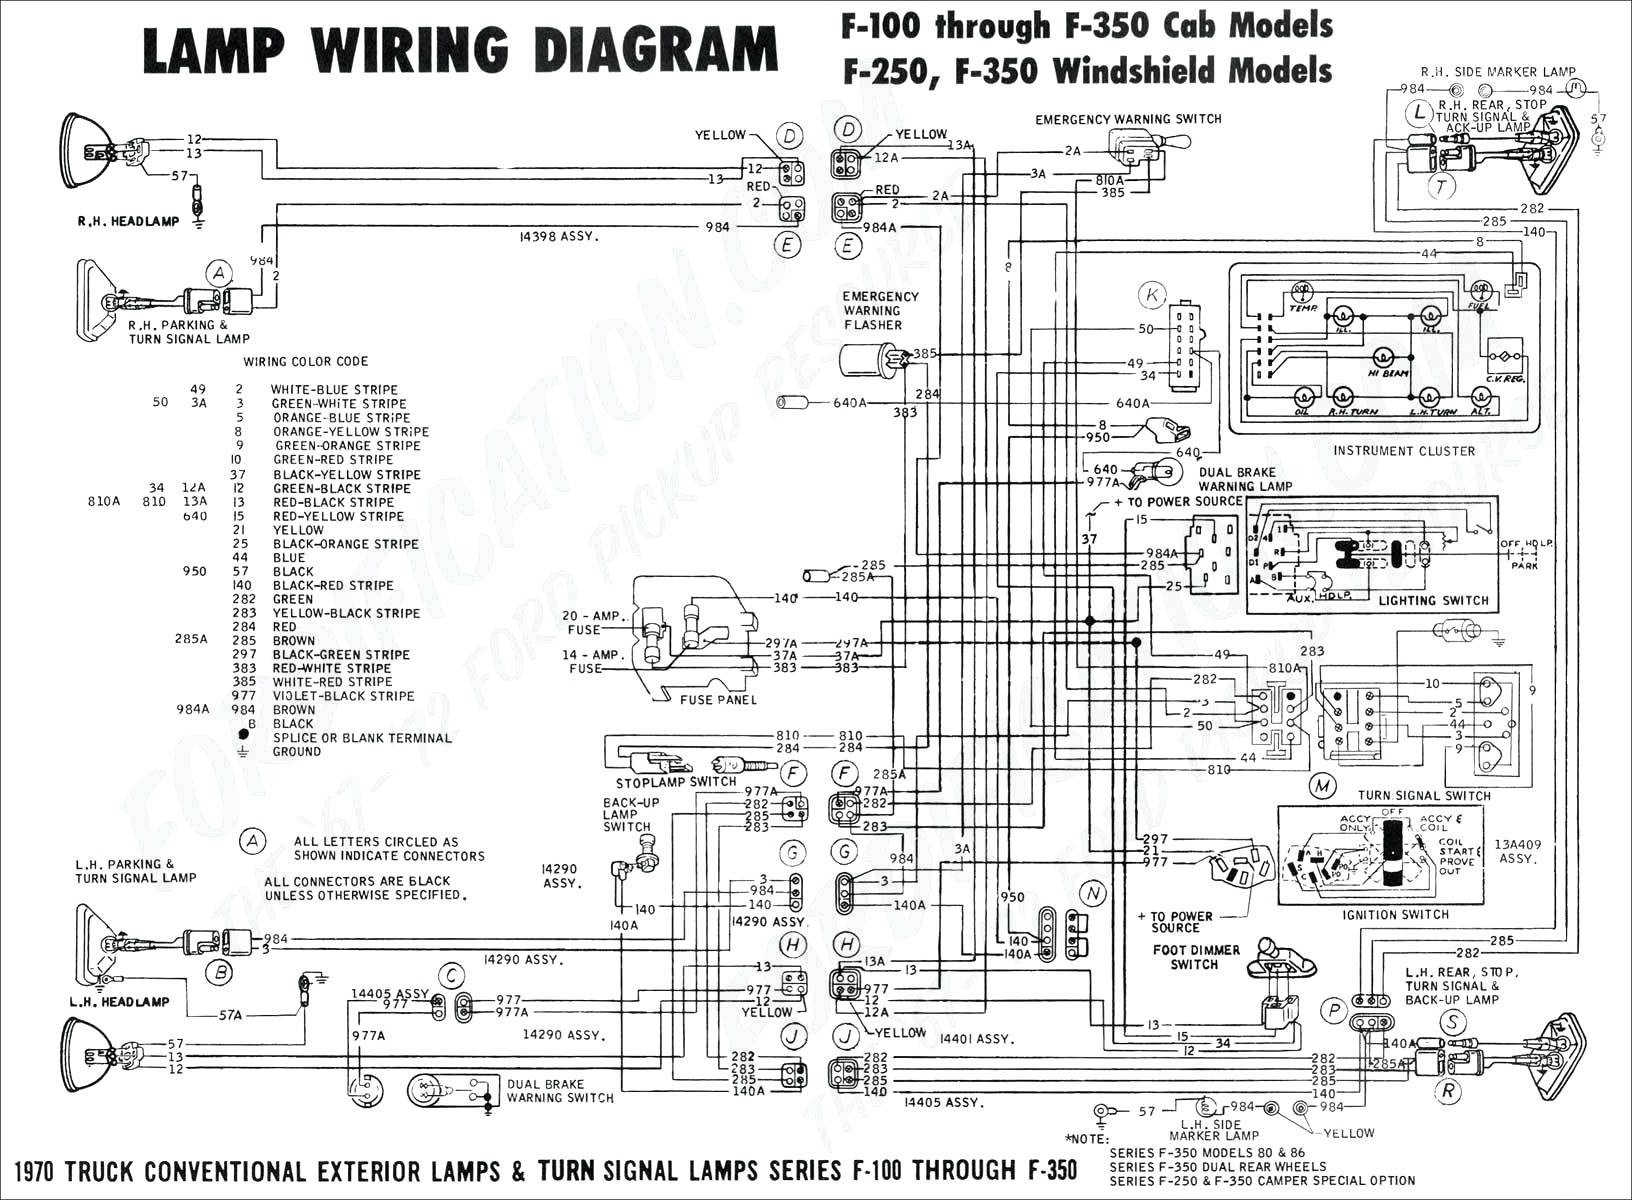 Will A Yamaha Kodiak 450 Wiring Harness Work On A 400 Of 2983] Speedometer Wiring Diagram for Yamaha Furthermore Of Will A Yamaha Kodiak 450 Wiring Harness Work On A 400